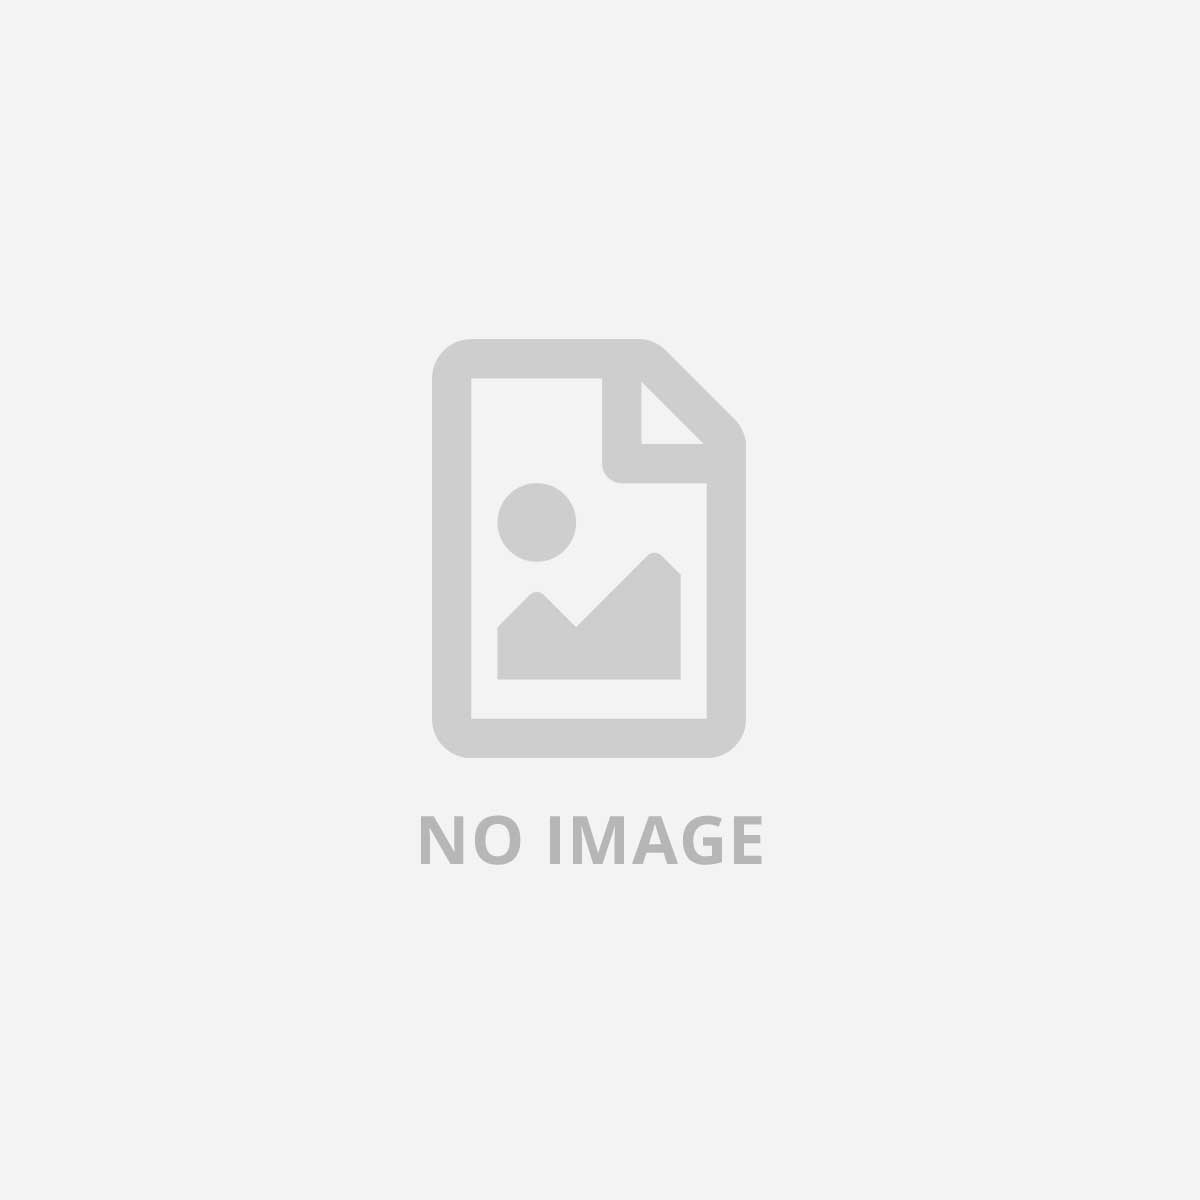 HONEYWELL USB CABLE STRAIGHT 2.9M TYPE A